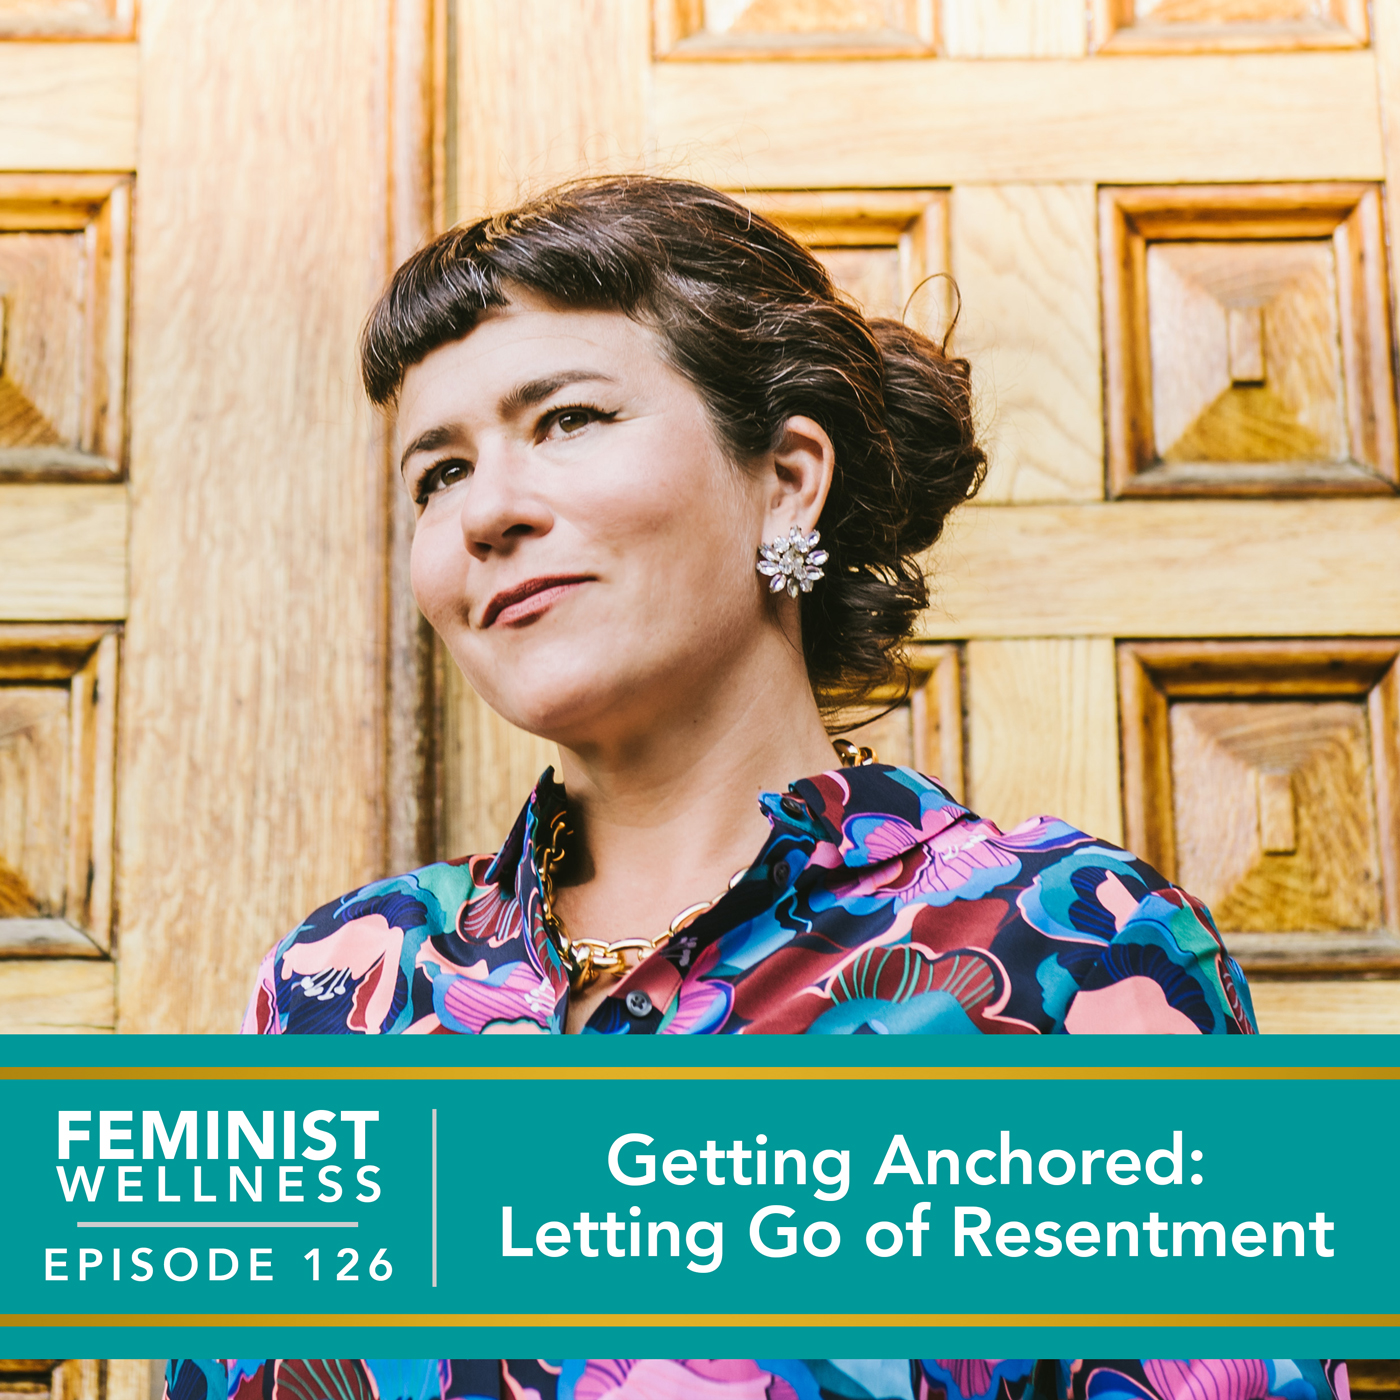 Feminist Wellness with Victoria Albina   Getting Anchored: Letting Go of Resentment